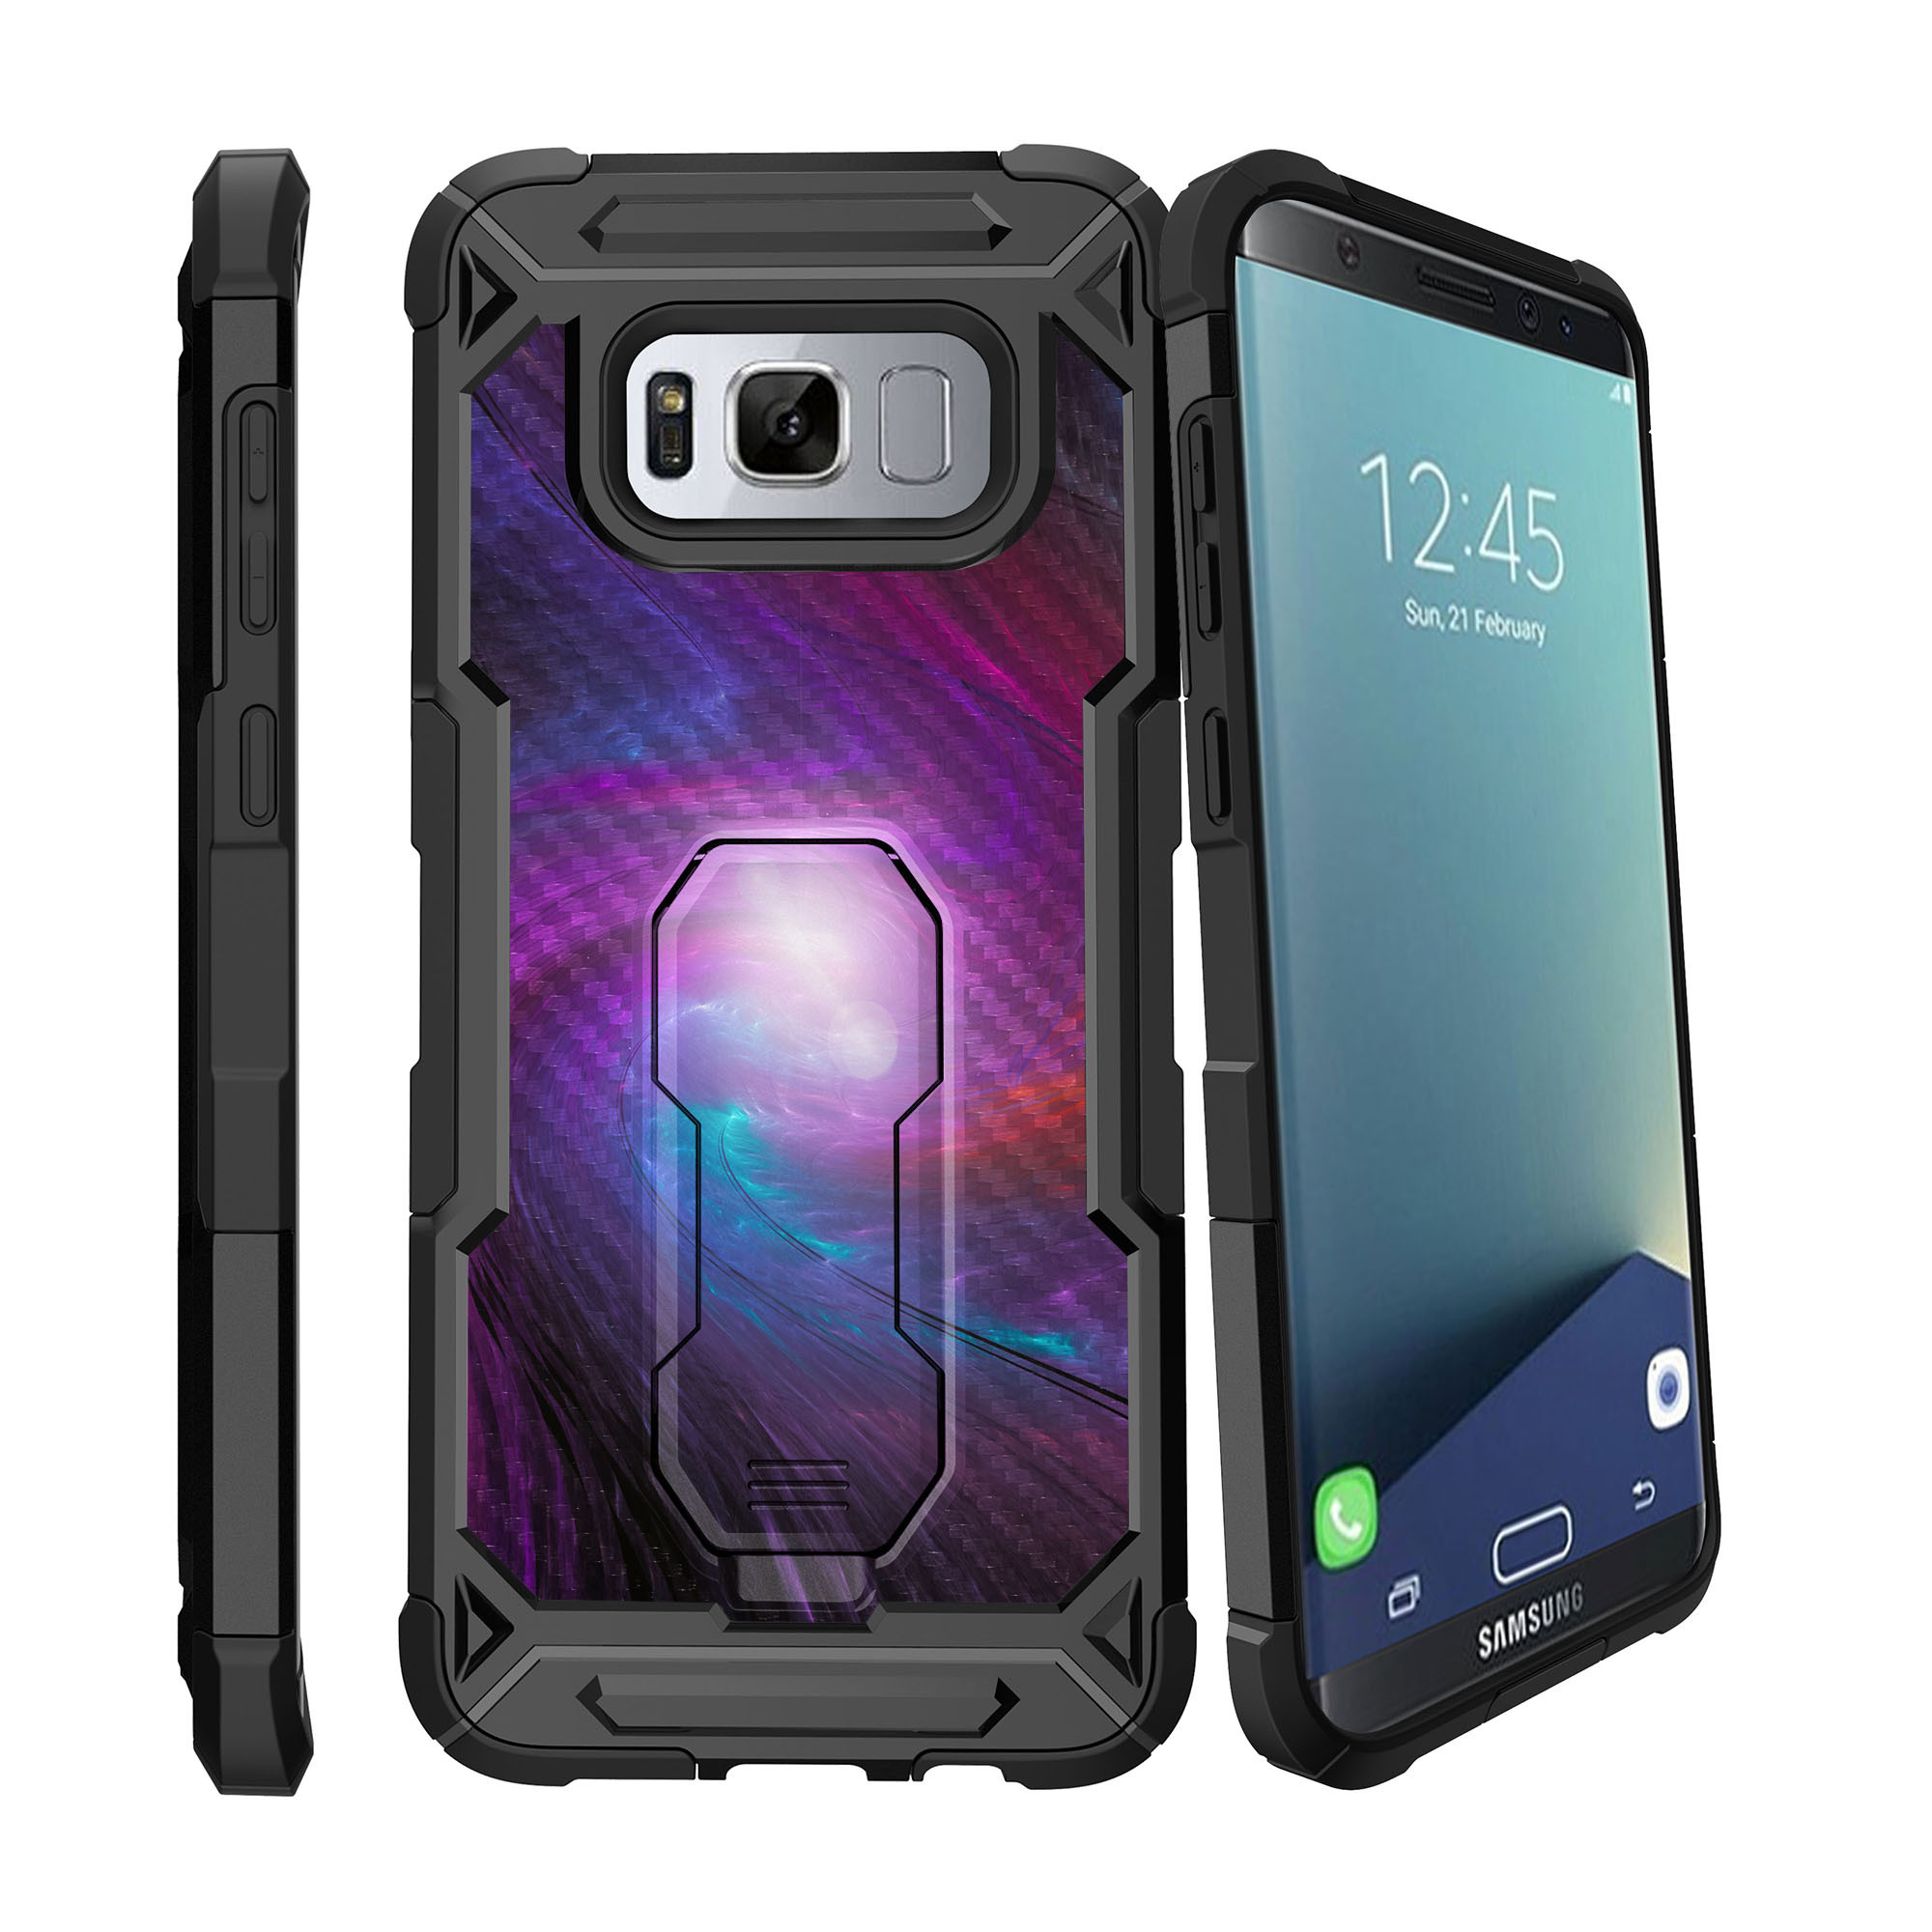 Case for Samsung Galaxy S8 Plus Version [ UFO Defense Case ][Galaxy S8 PLUS SM-G955][Black Silicone] Carbon Fiber Texture Case with Holster + Stand Galaxy Collection